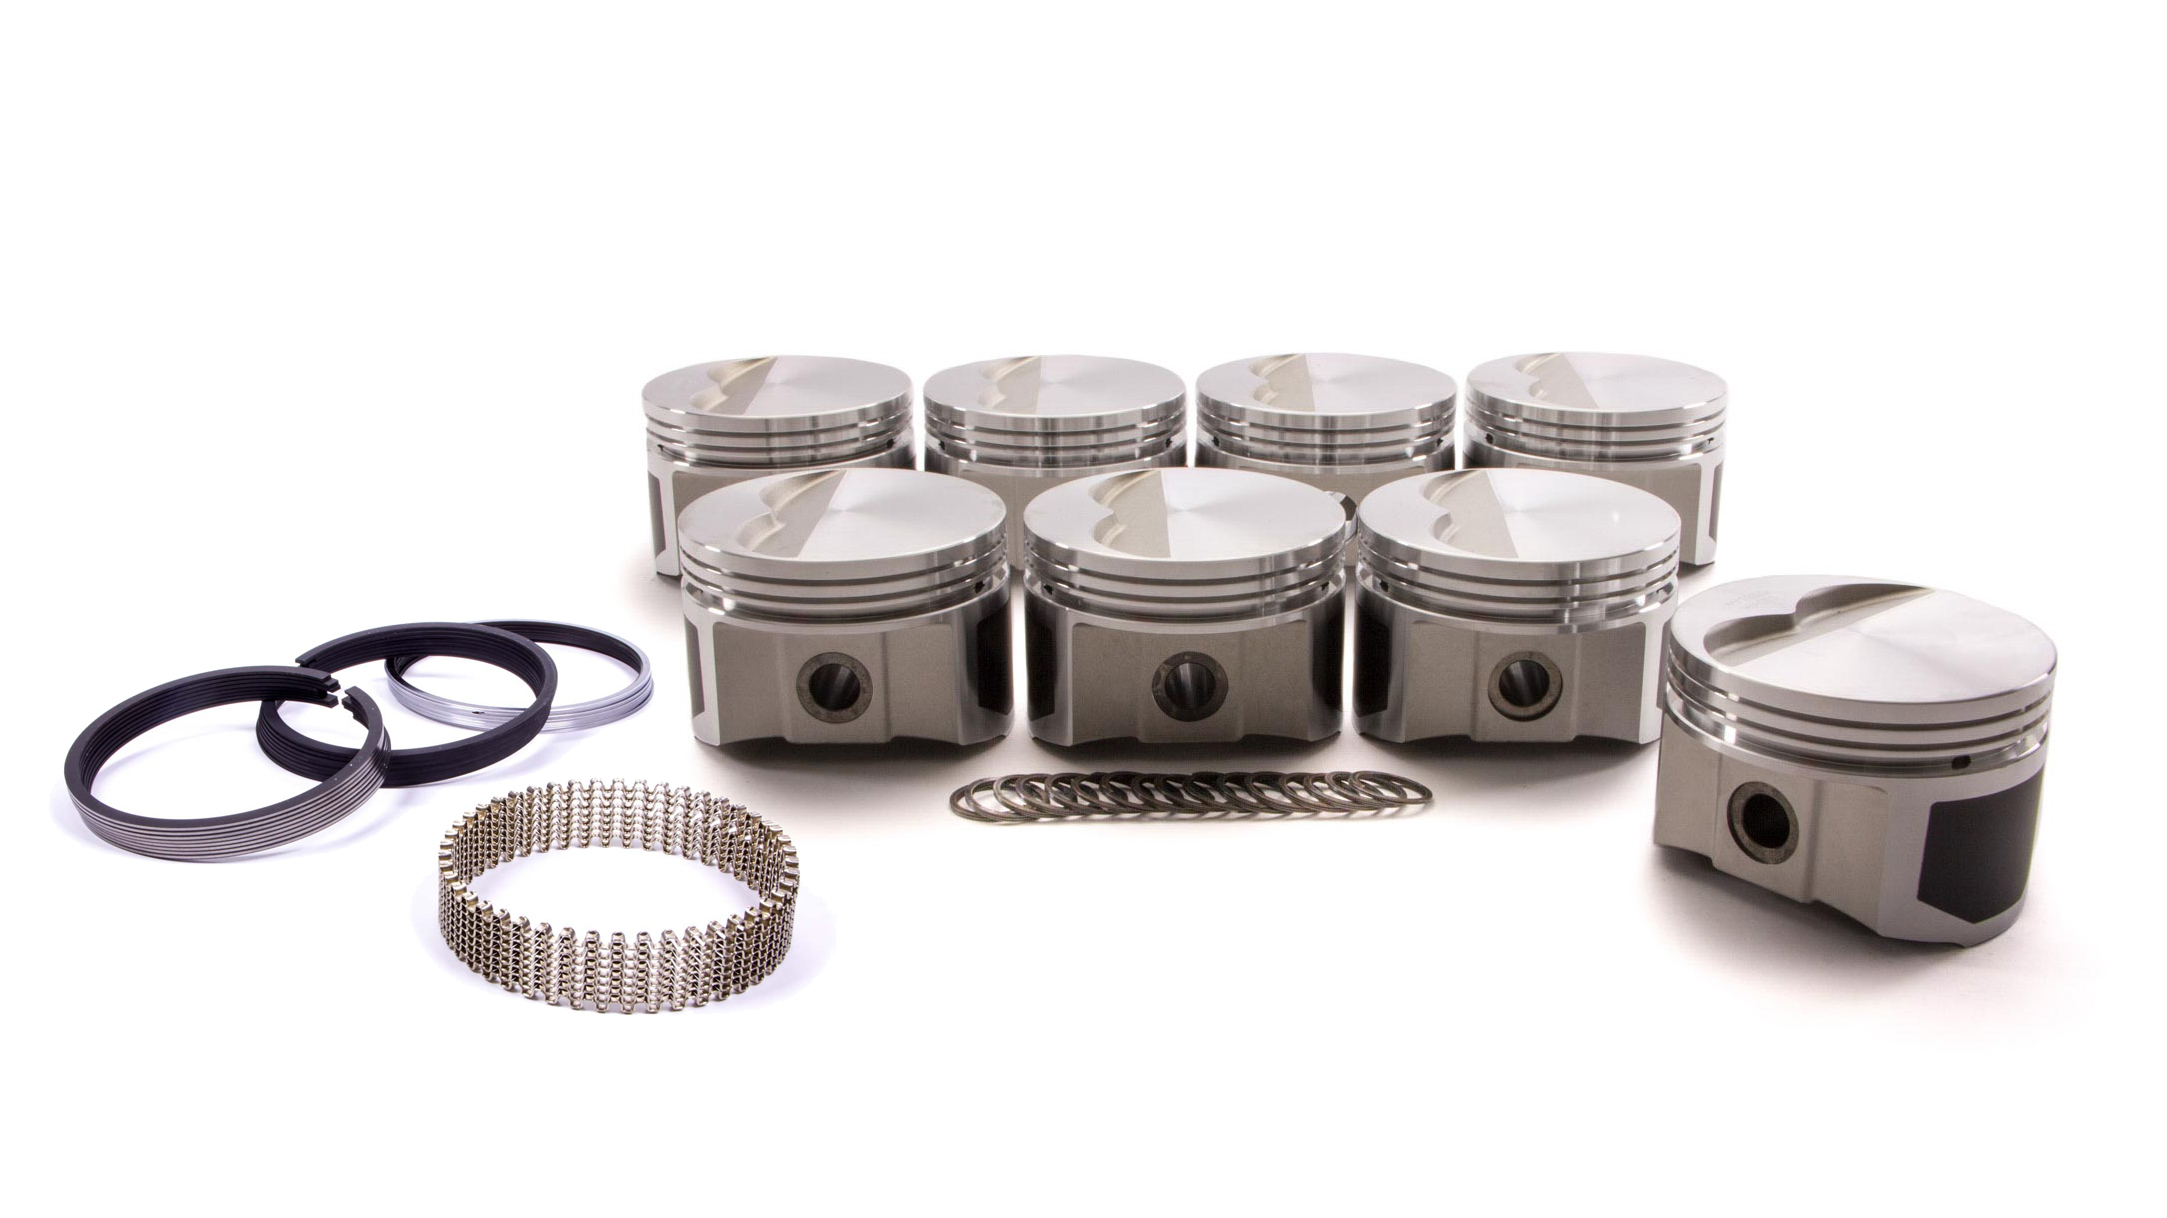 Wiseco Pro-Tru PTS501A3 Piston and Ring, Windsor Flat Top, Forged, 4.030 in Bore, 1/16 x 1/16 x 3/16 in Ring Grooves, Minus 7.0 cc, Small Block Ford, Kit